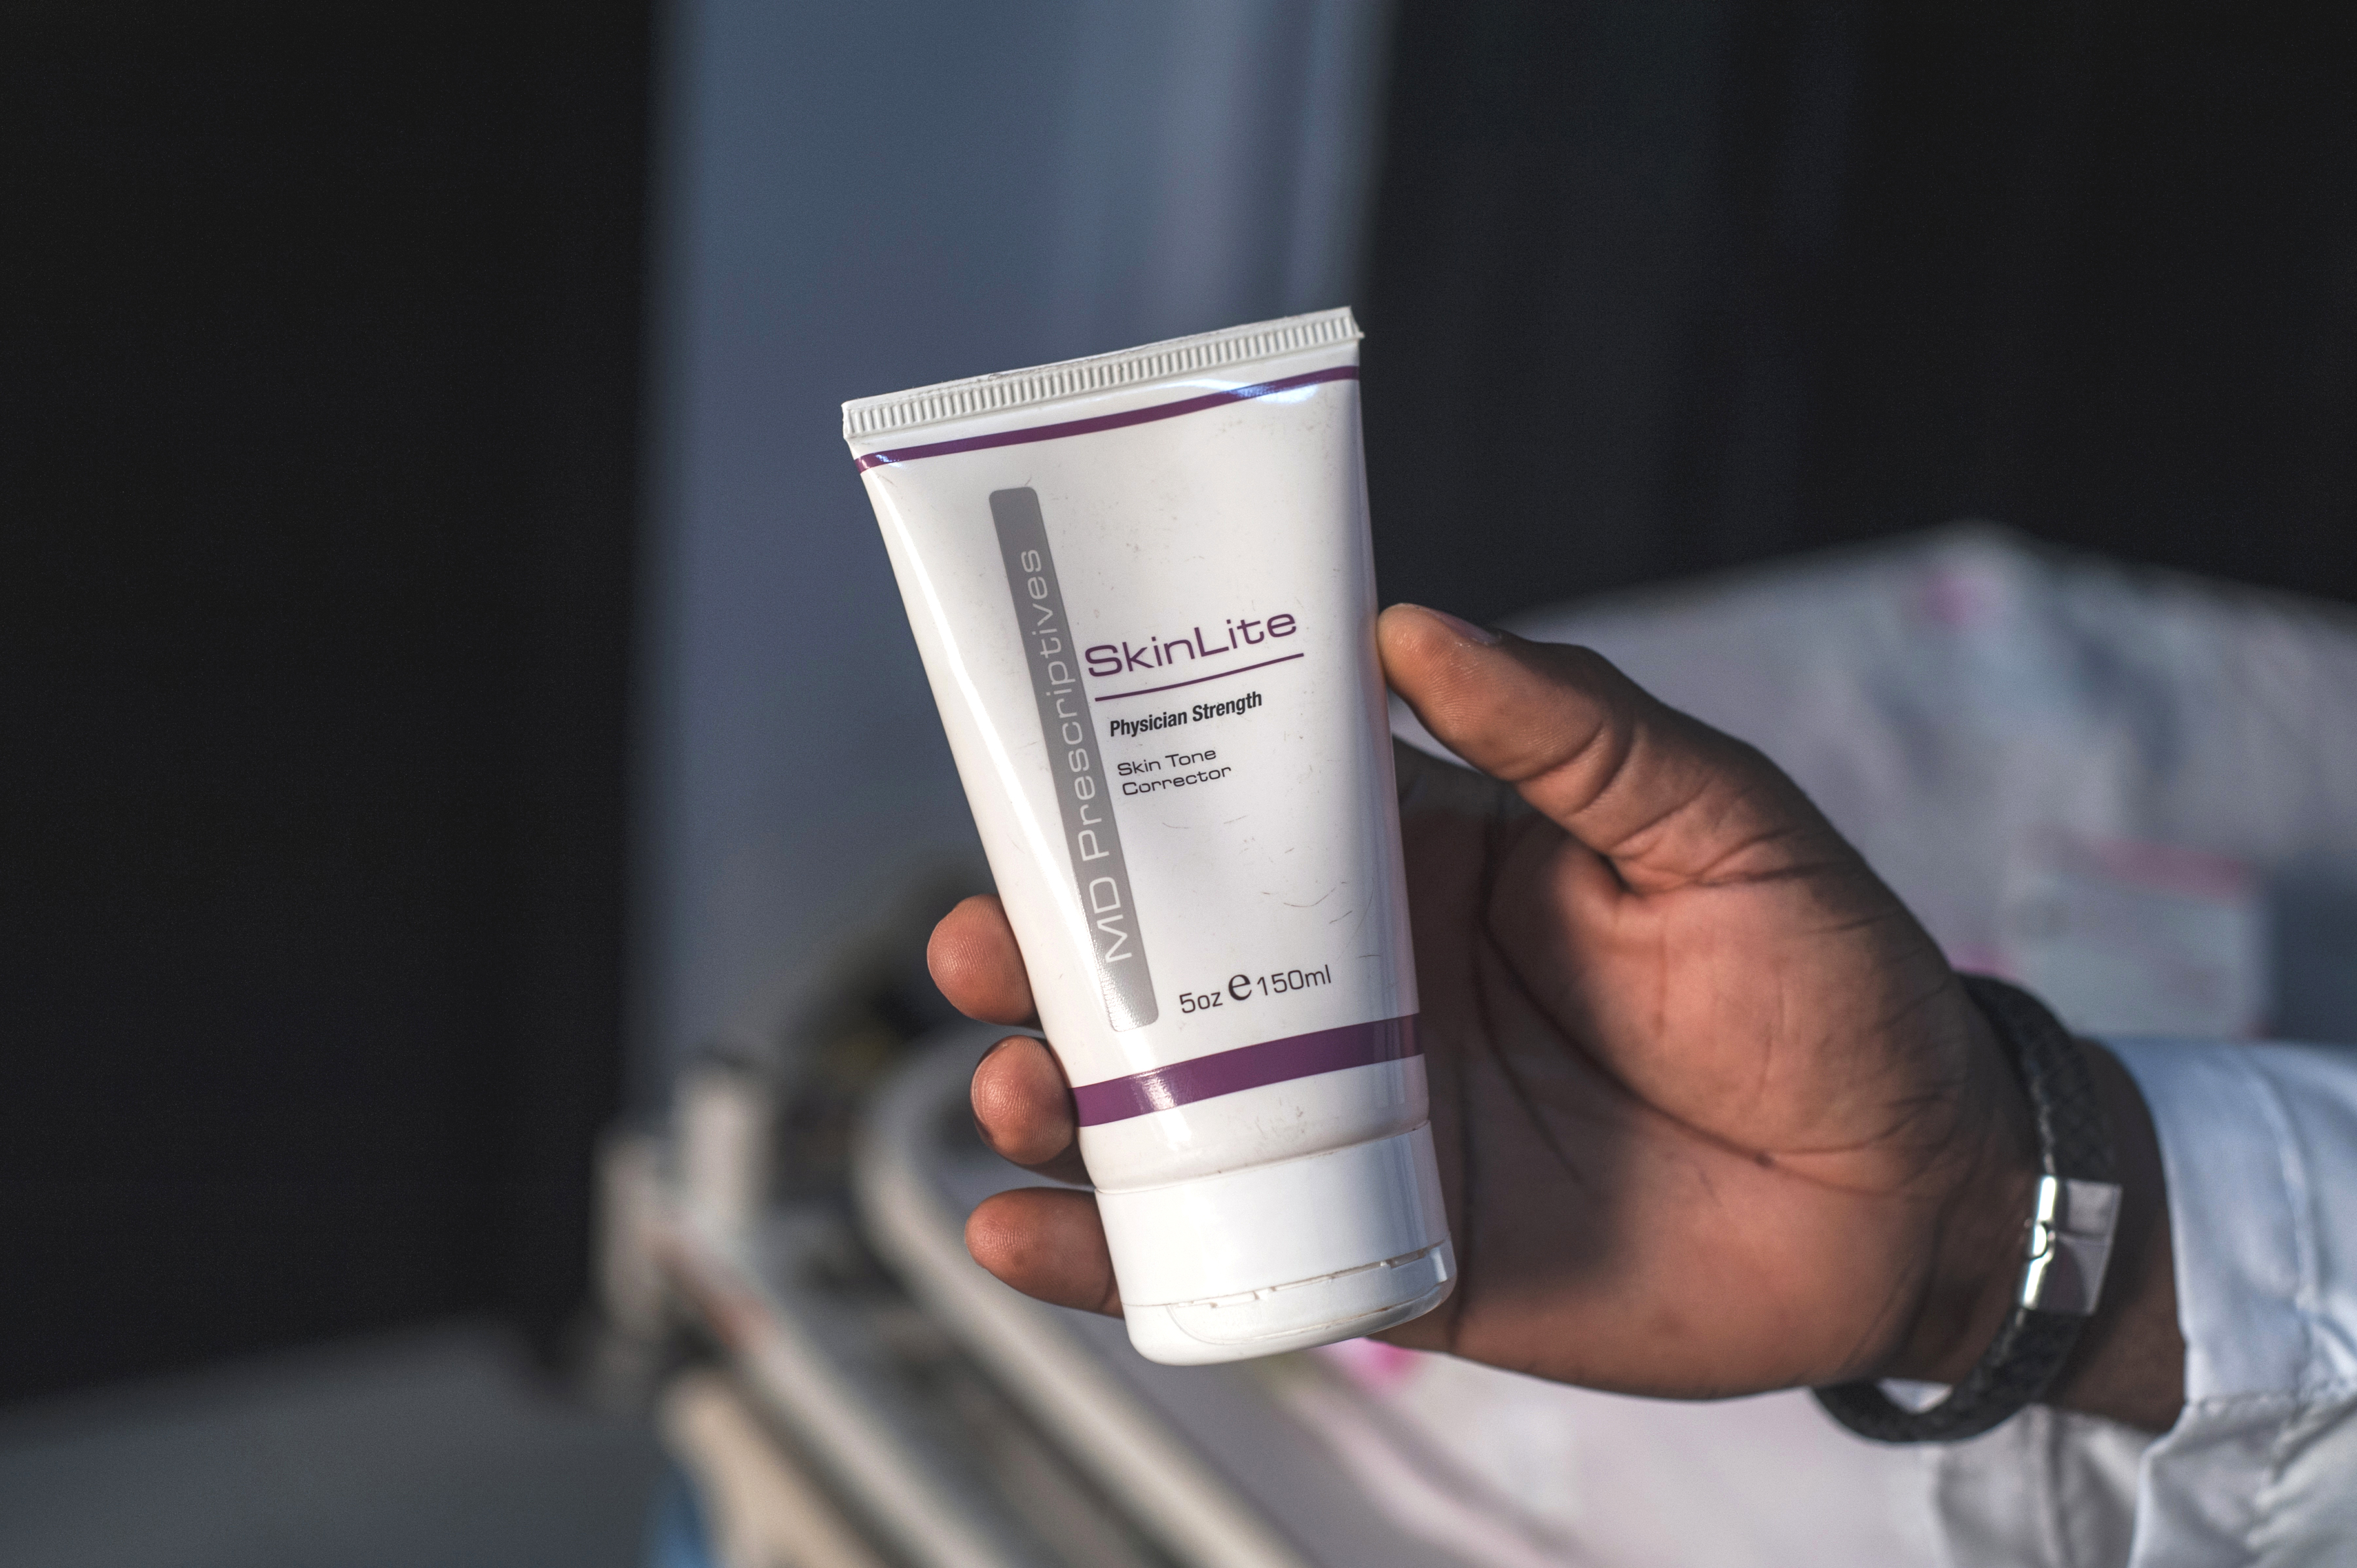 Aranmolate Ayobami, plastic surgeon at Grandville Medical and Laser clinic in Lagos, Nigeria, holds a tube of Skinlite a skin lightening product used at his clinic, July 17, 2018, in Lagos.